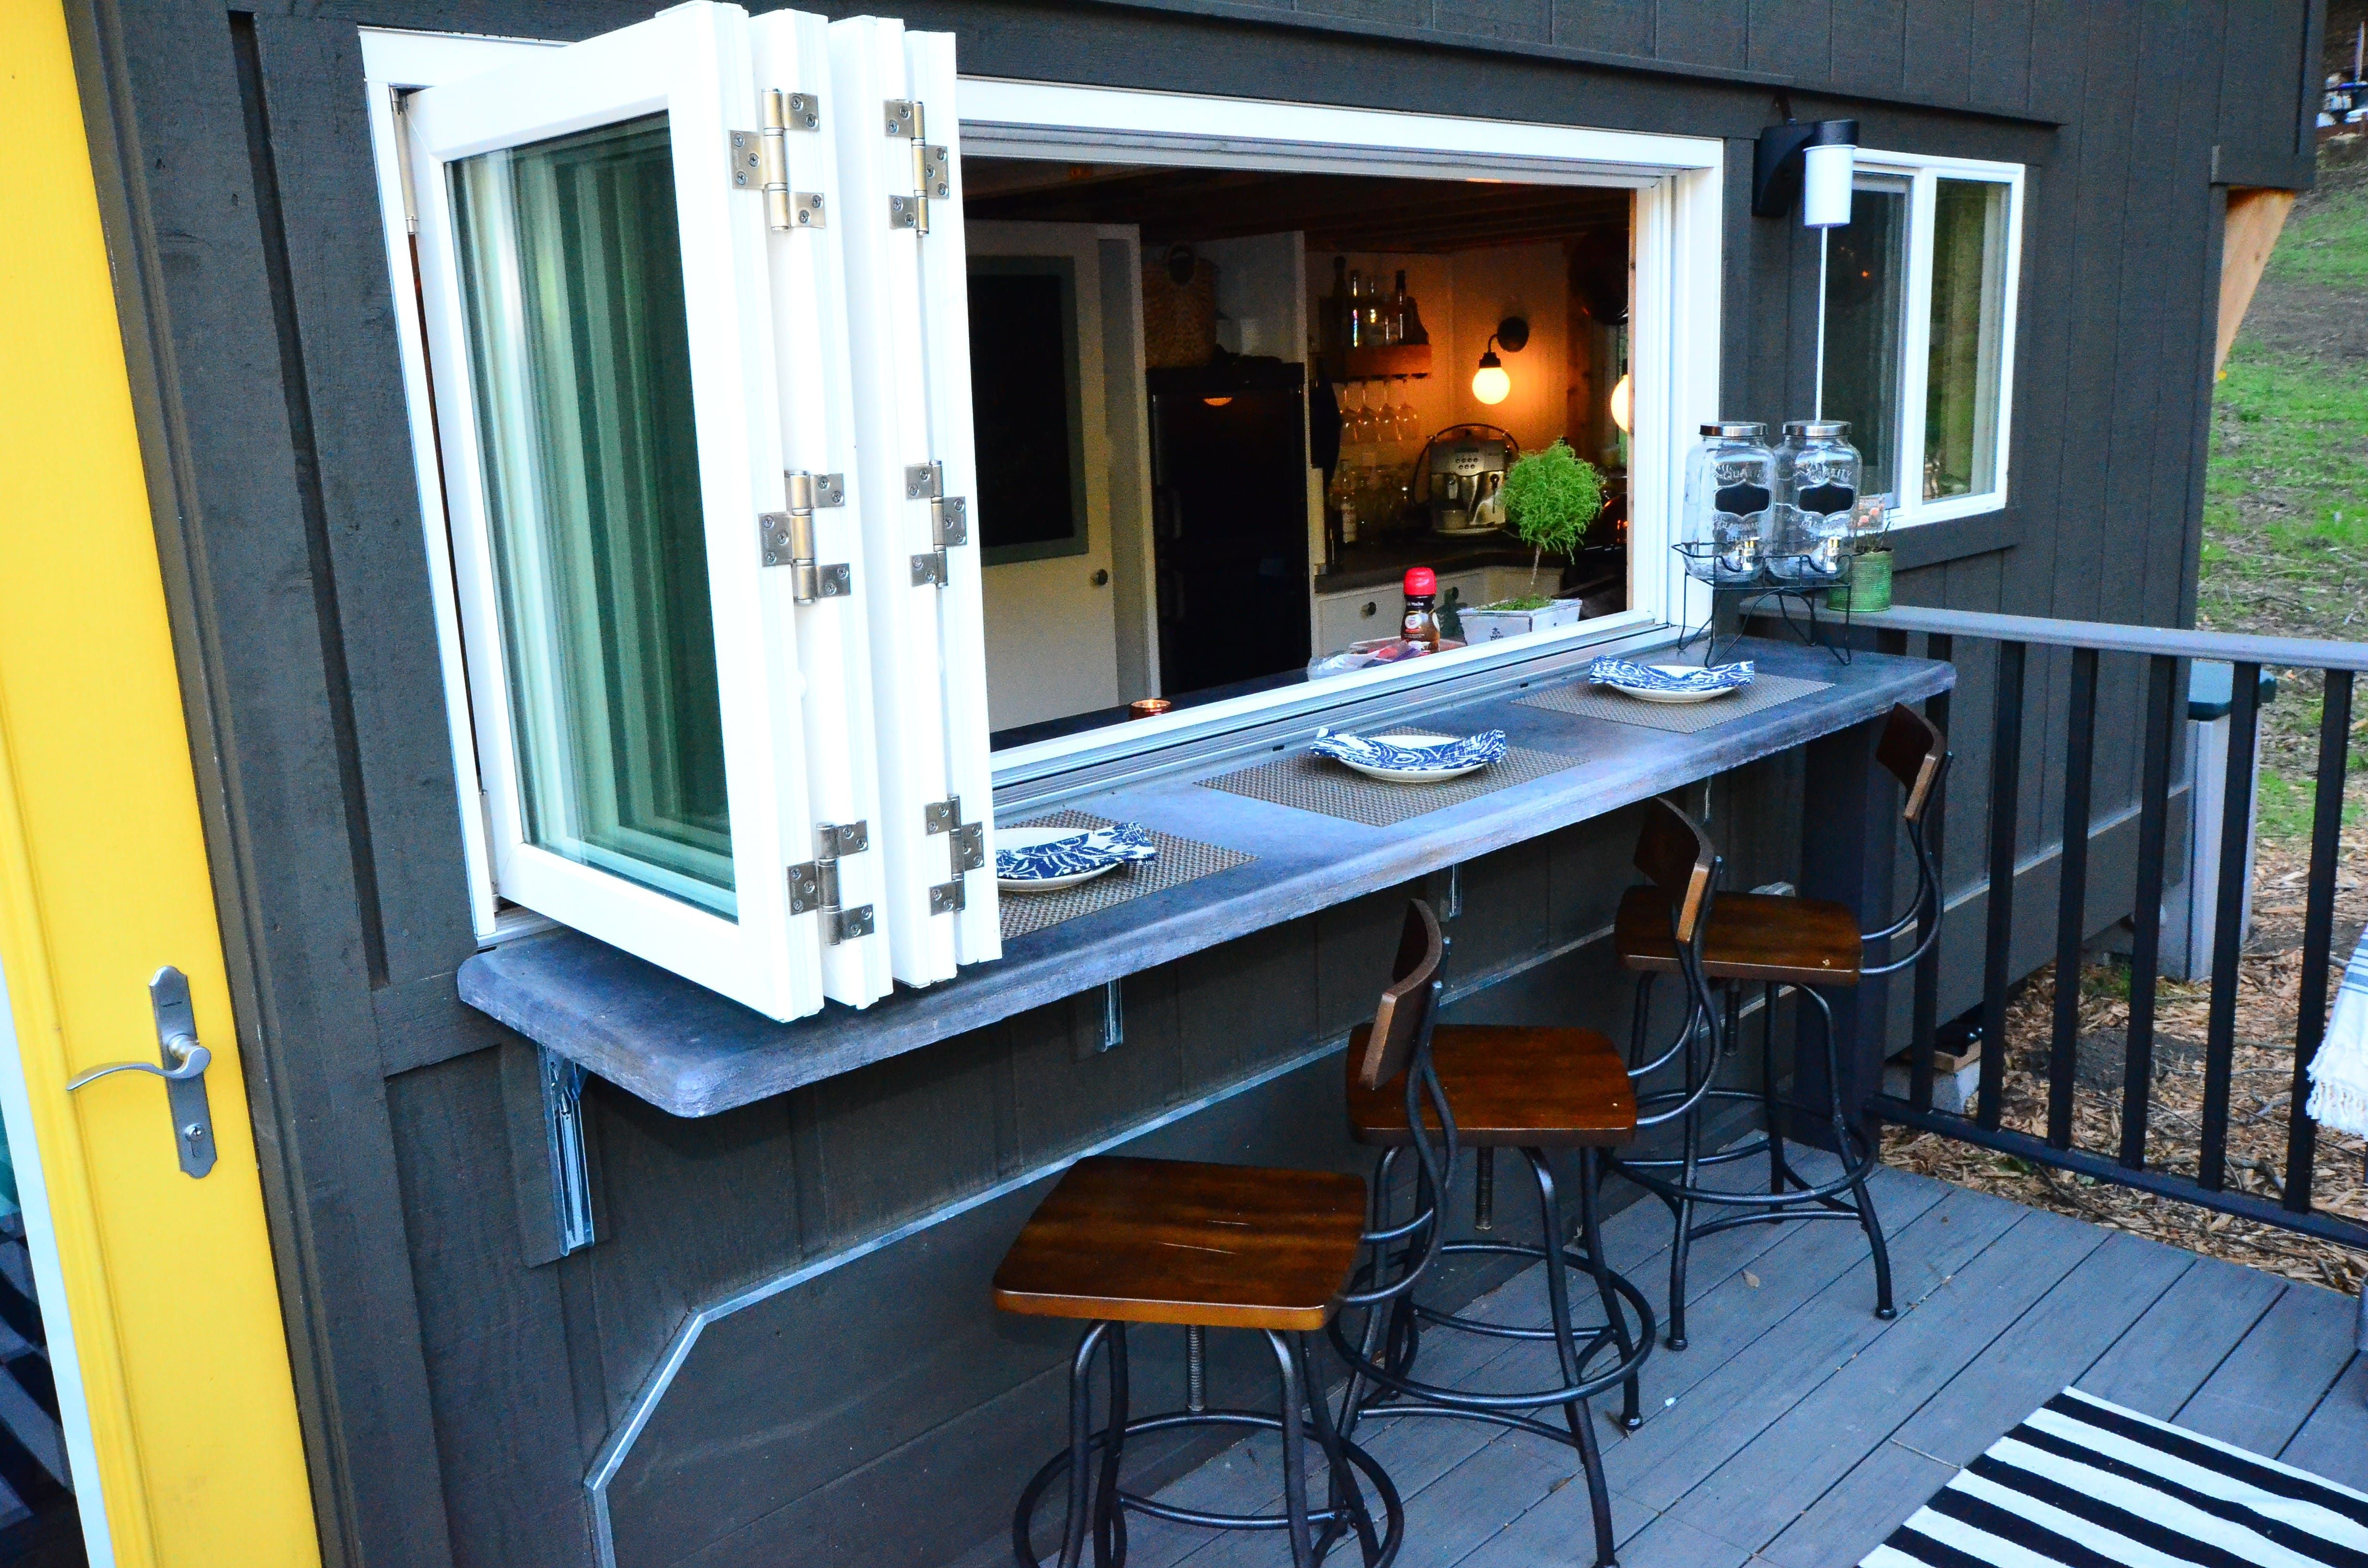 This Small Kitchen Window Opens Up To The Outside Patio, Where Stools  Welcome Guests For A Bbq. Tiny Homes